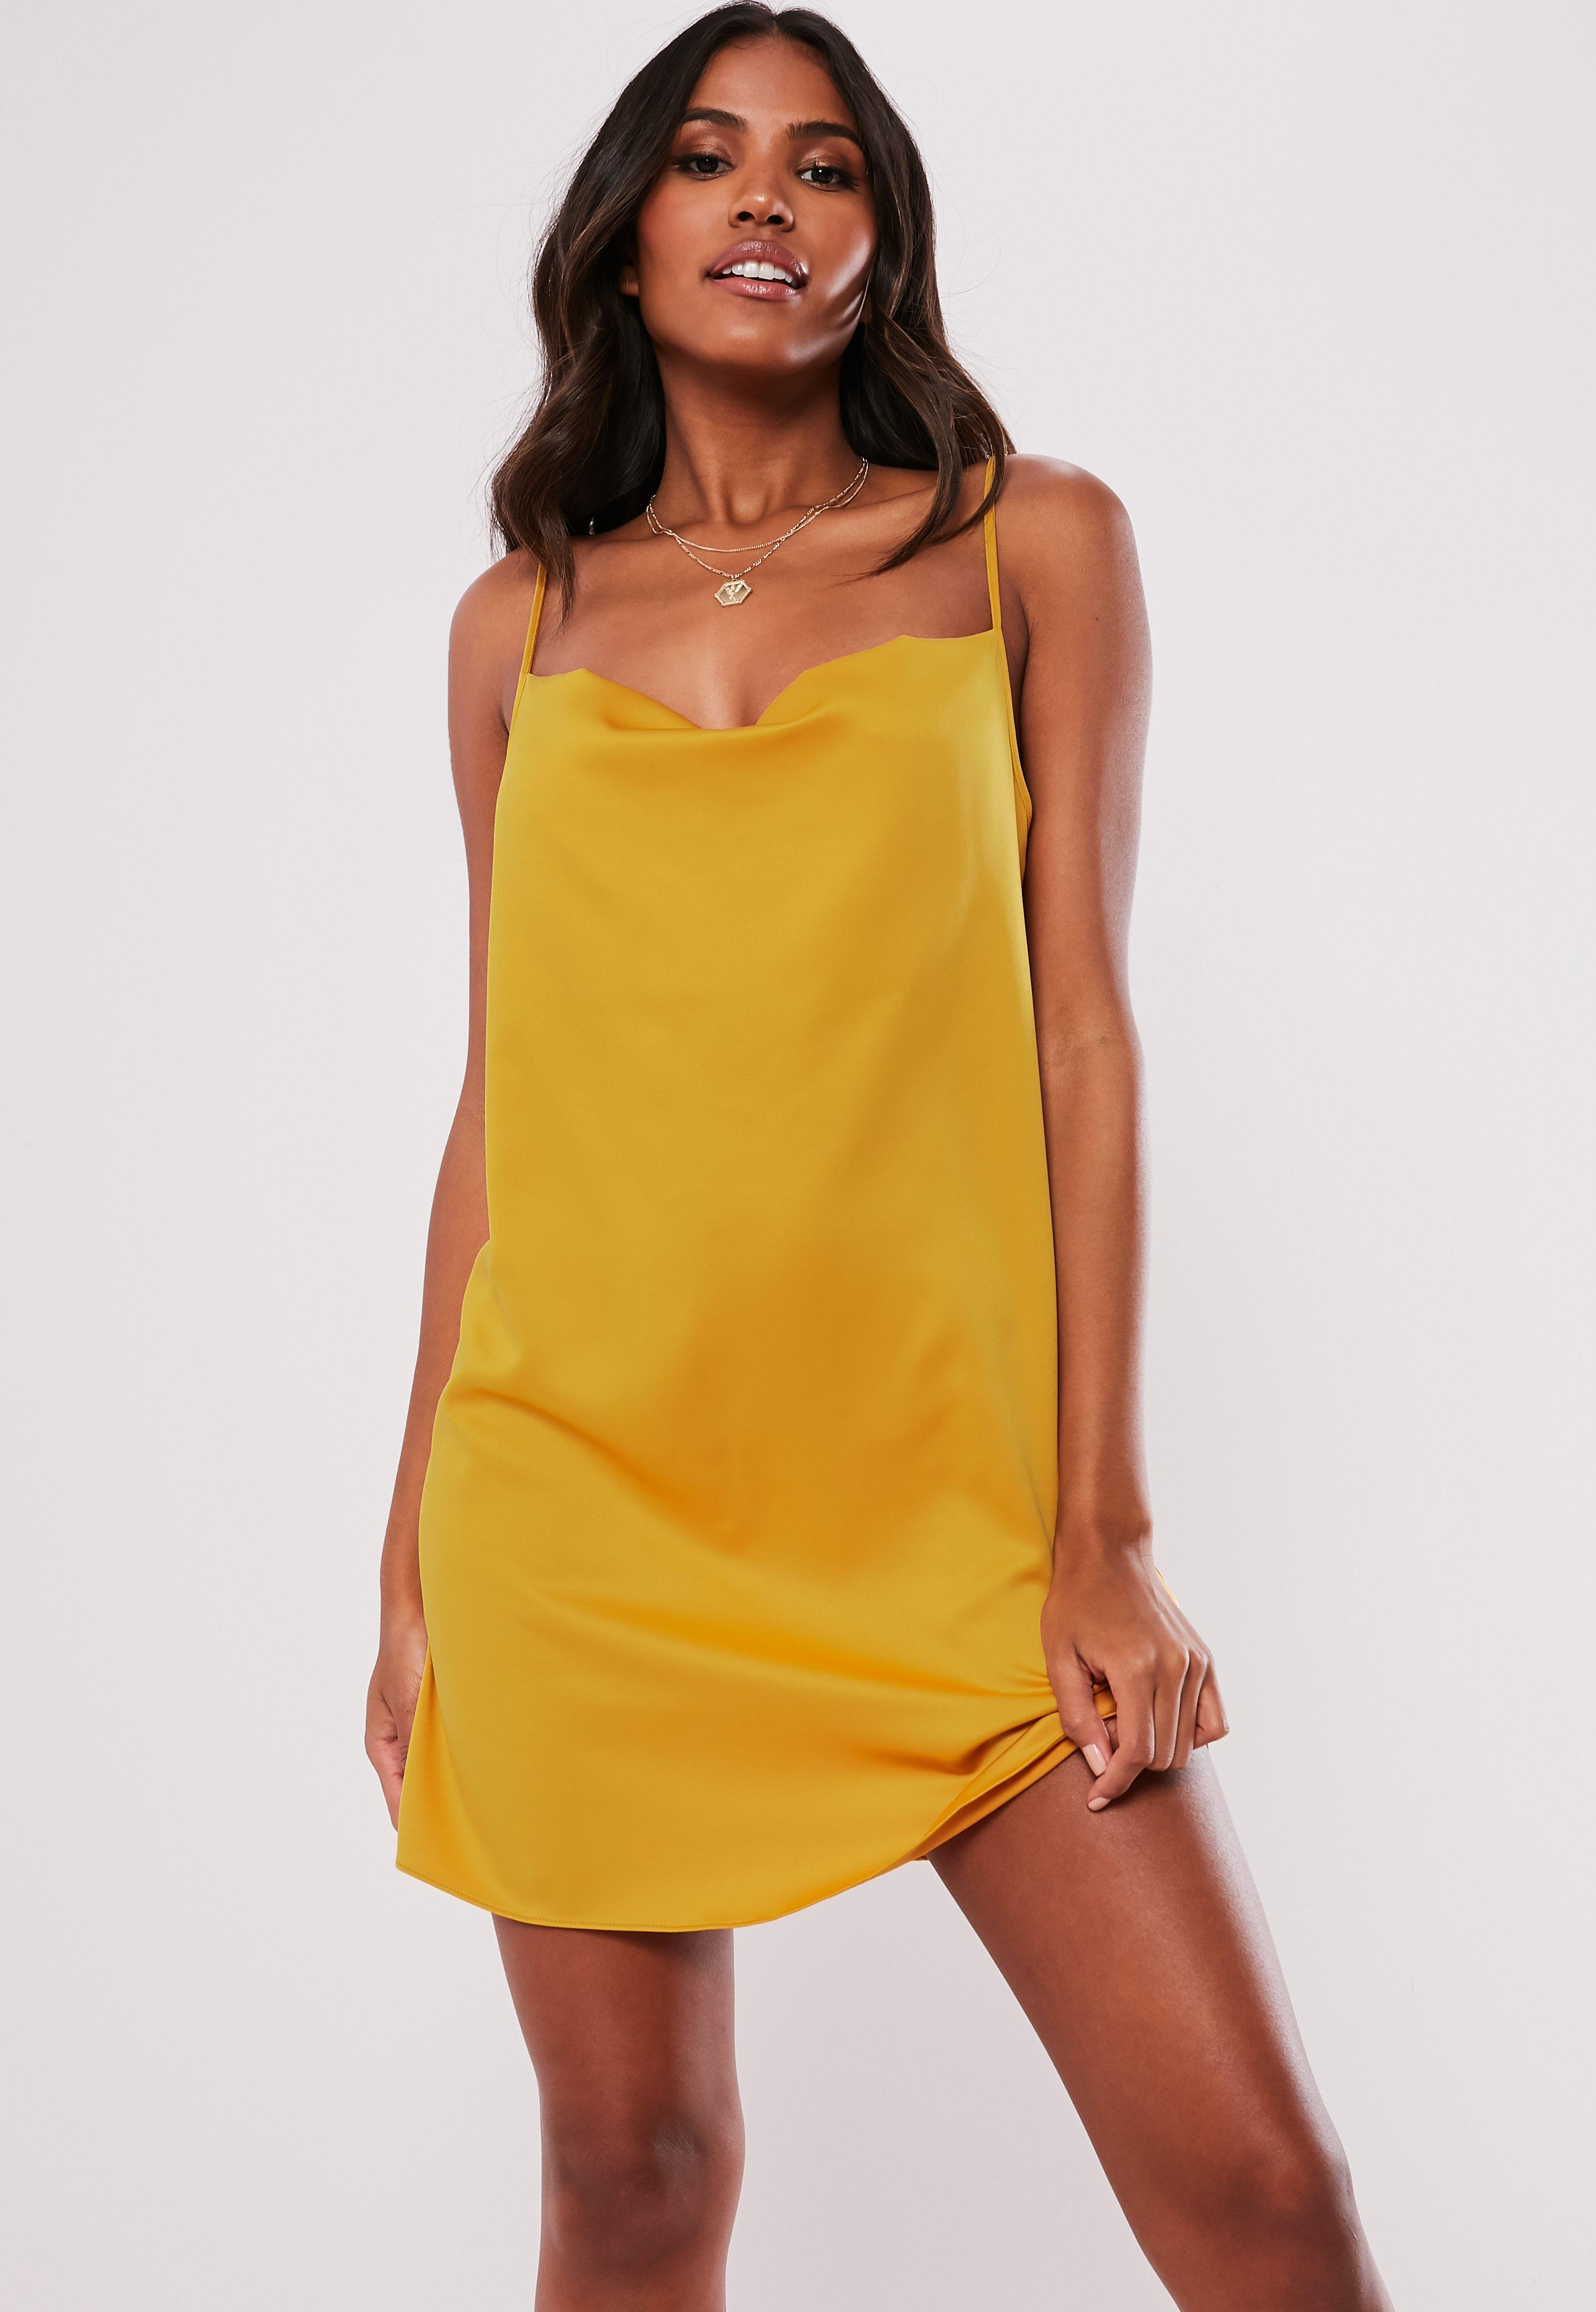 31c079280a6bd Yellow Dresses - Mustard & Chartreuse Dresses | Missguided